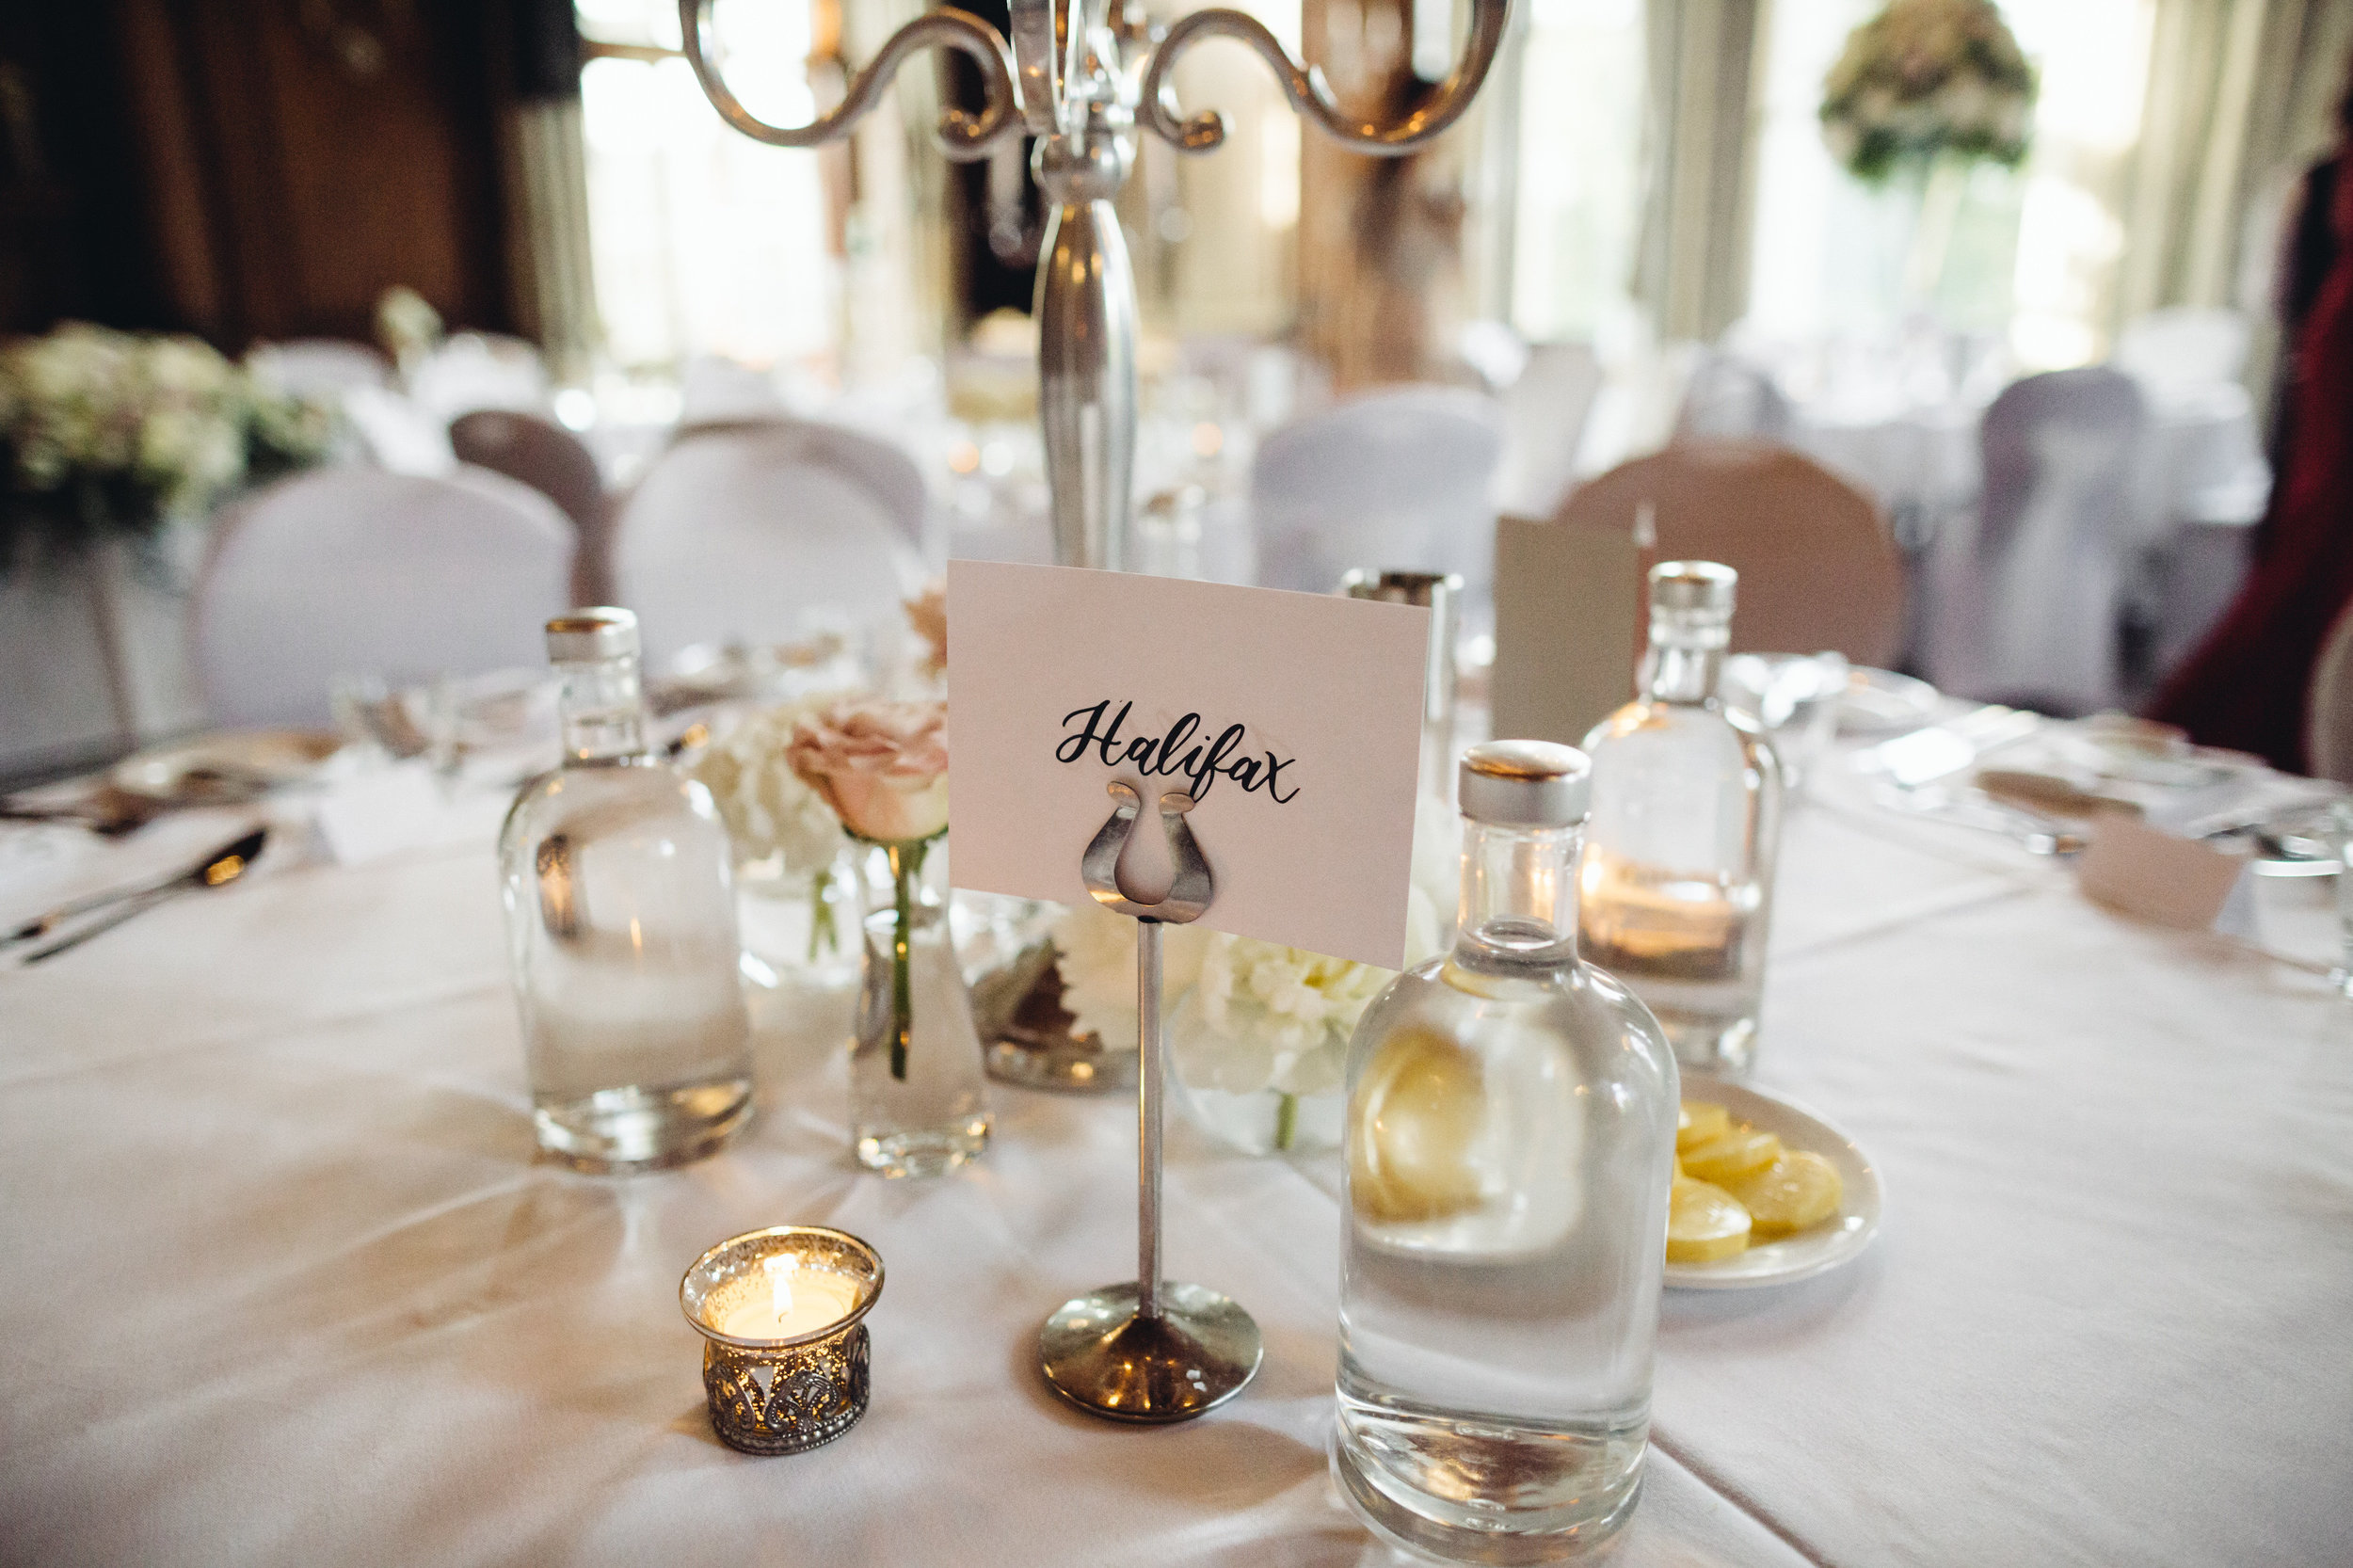 A wedding table with a table name sign